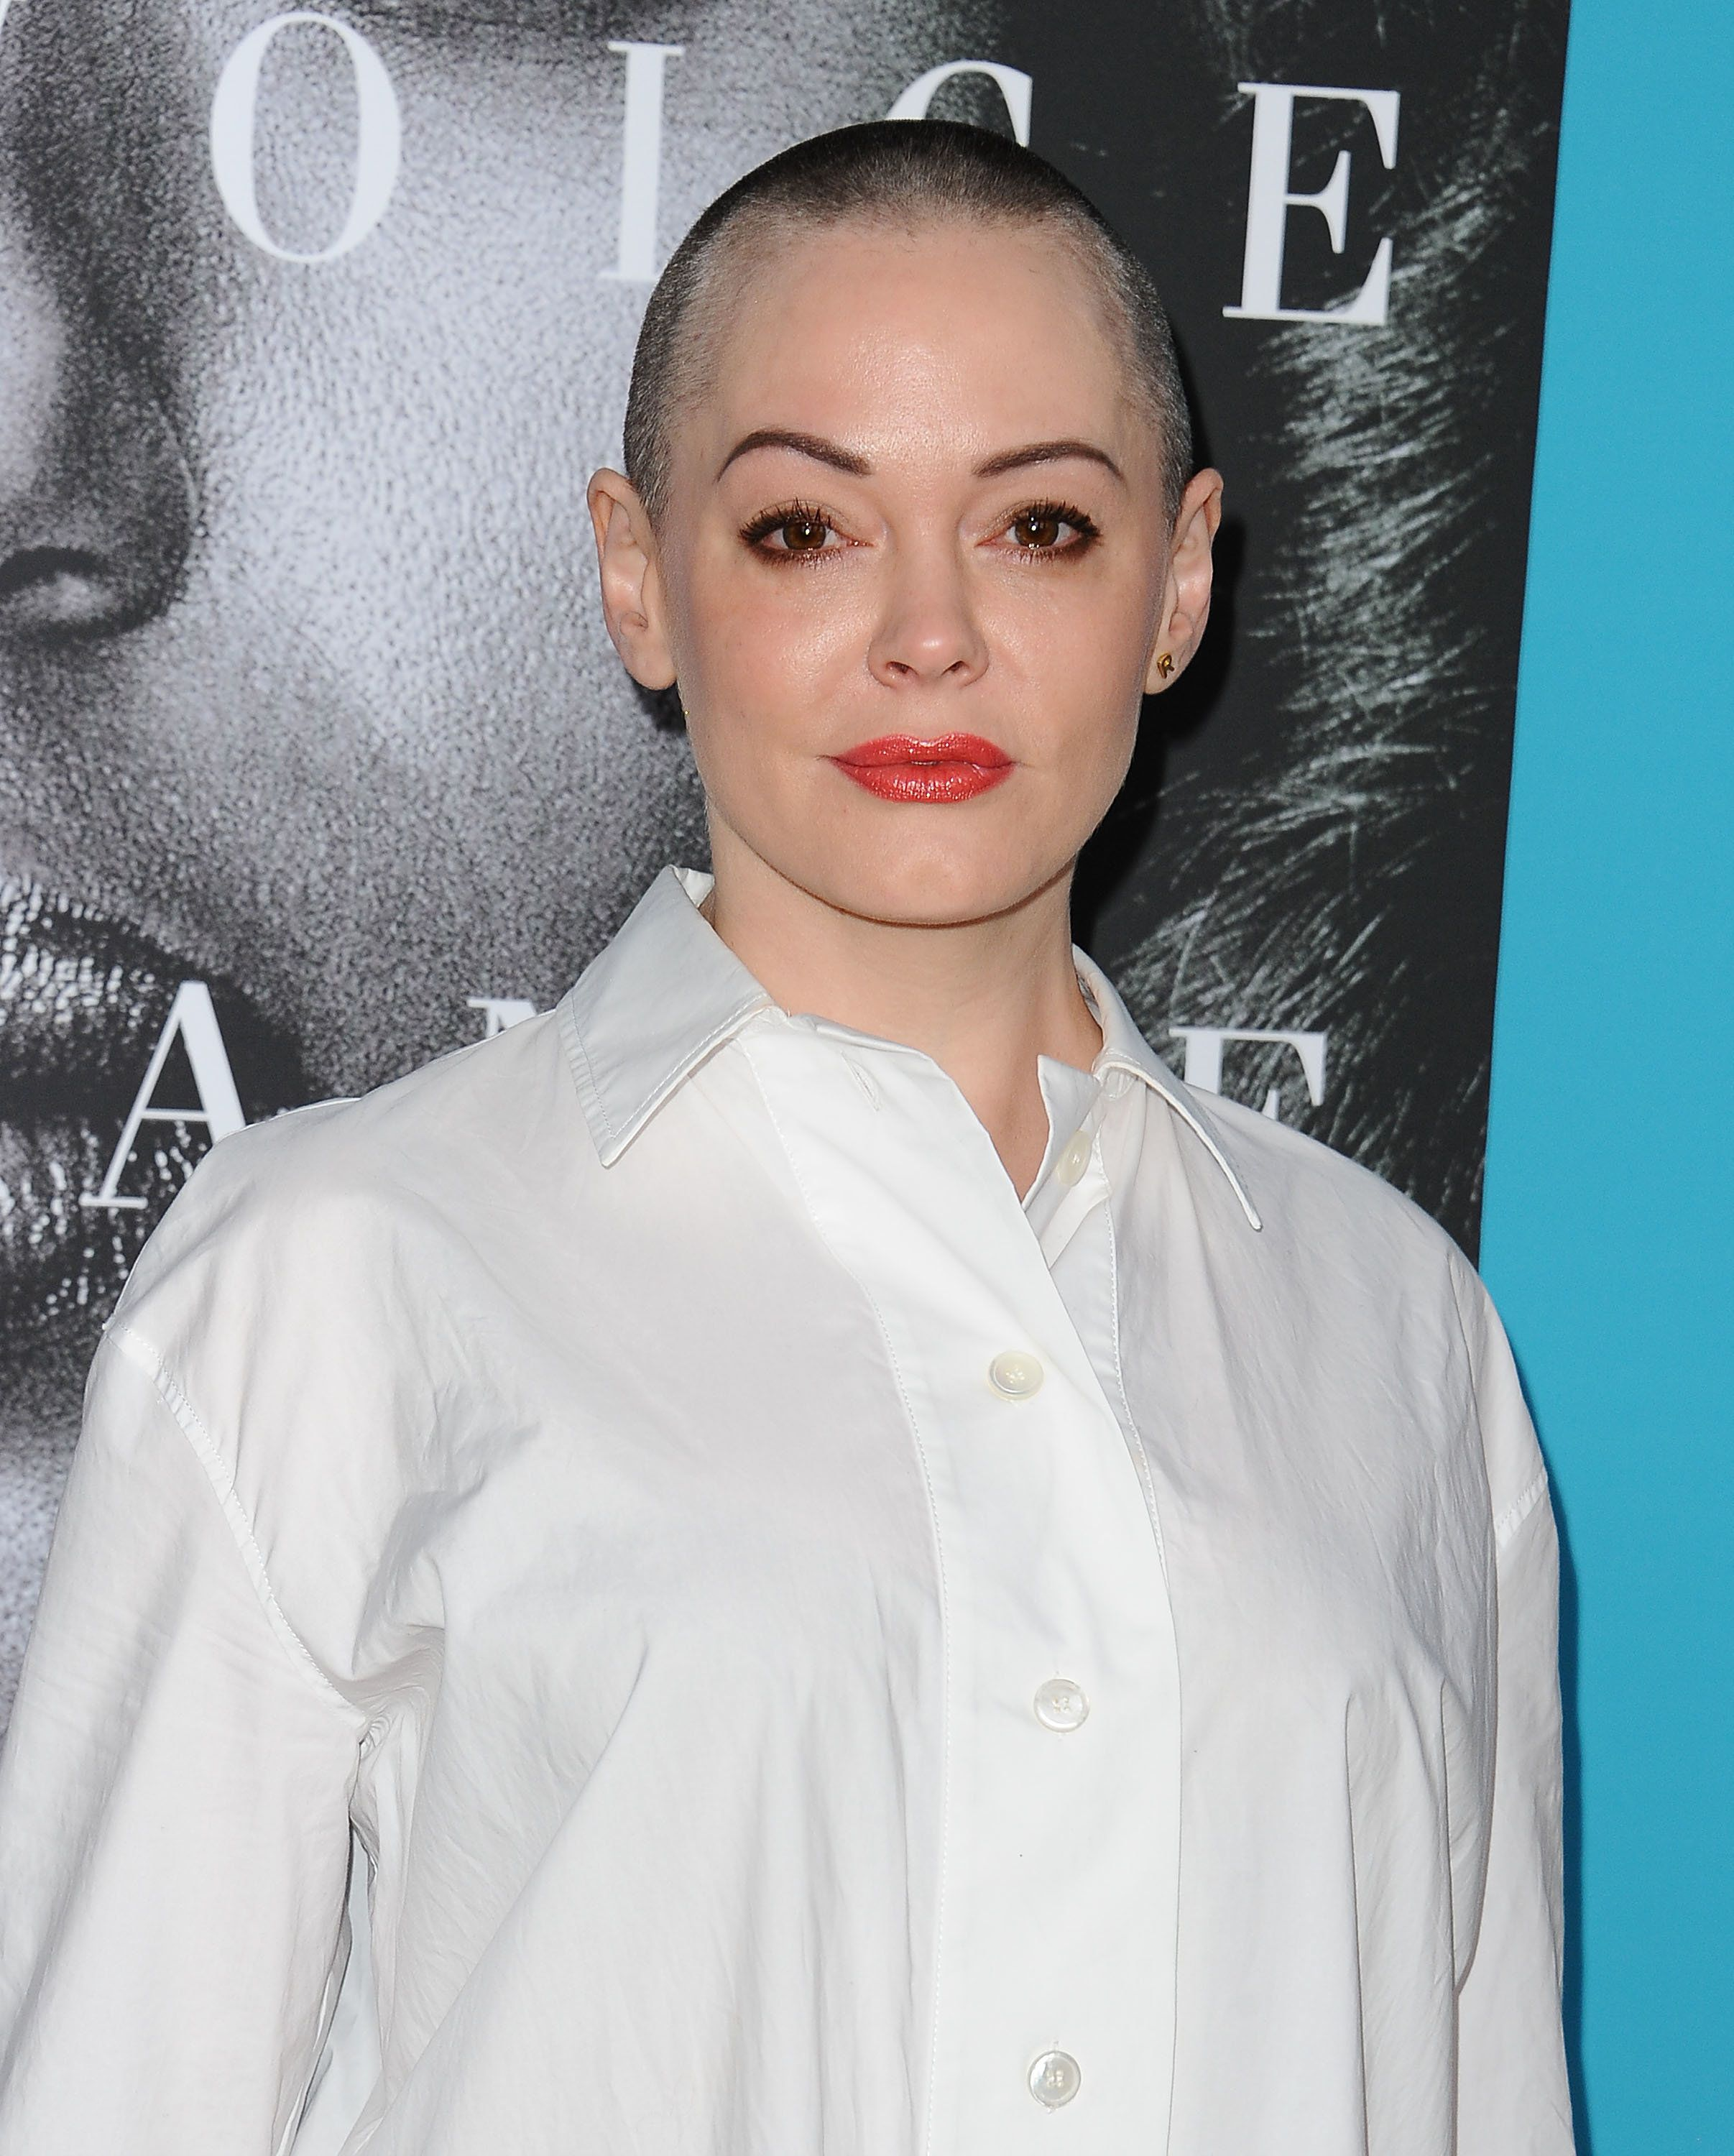 Rose McGowan's Twitter account reactivated